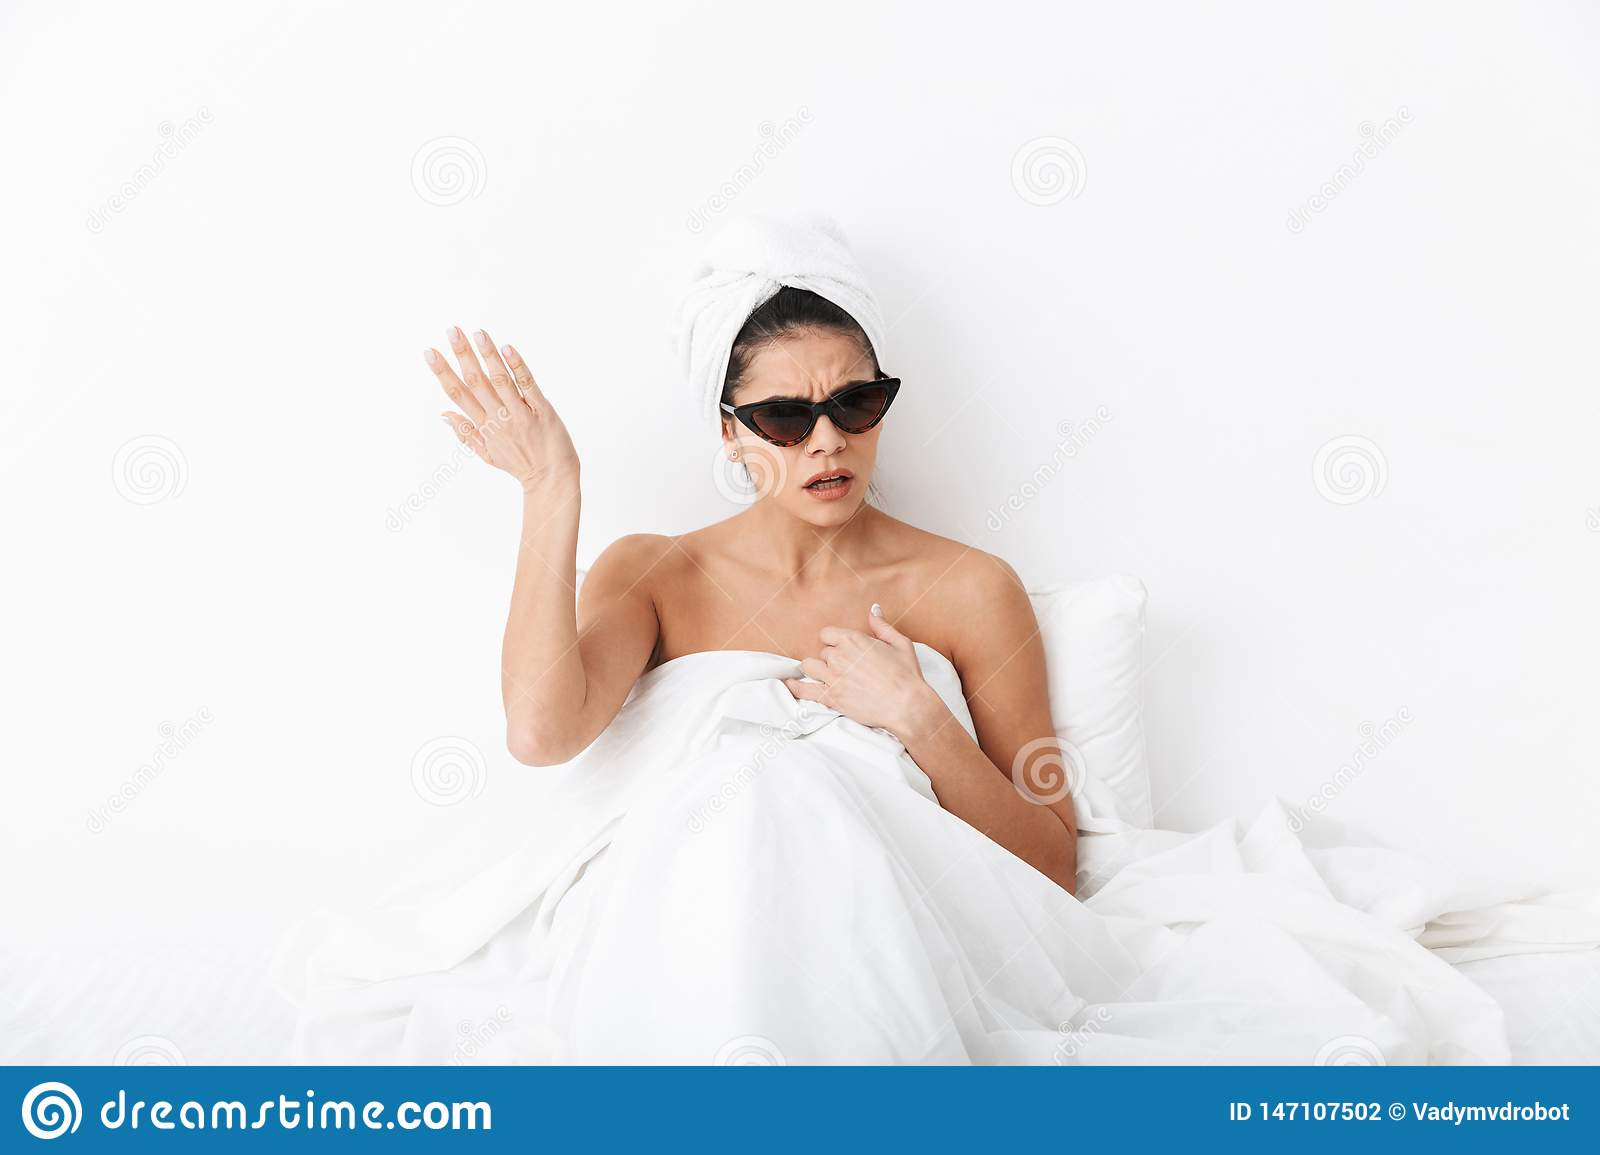 Shocked woman with towel on head lies in bed under blanket isolated over white wall background wearing sunglasses